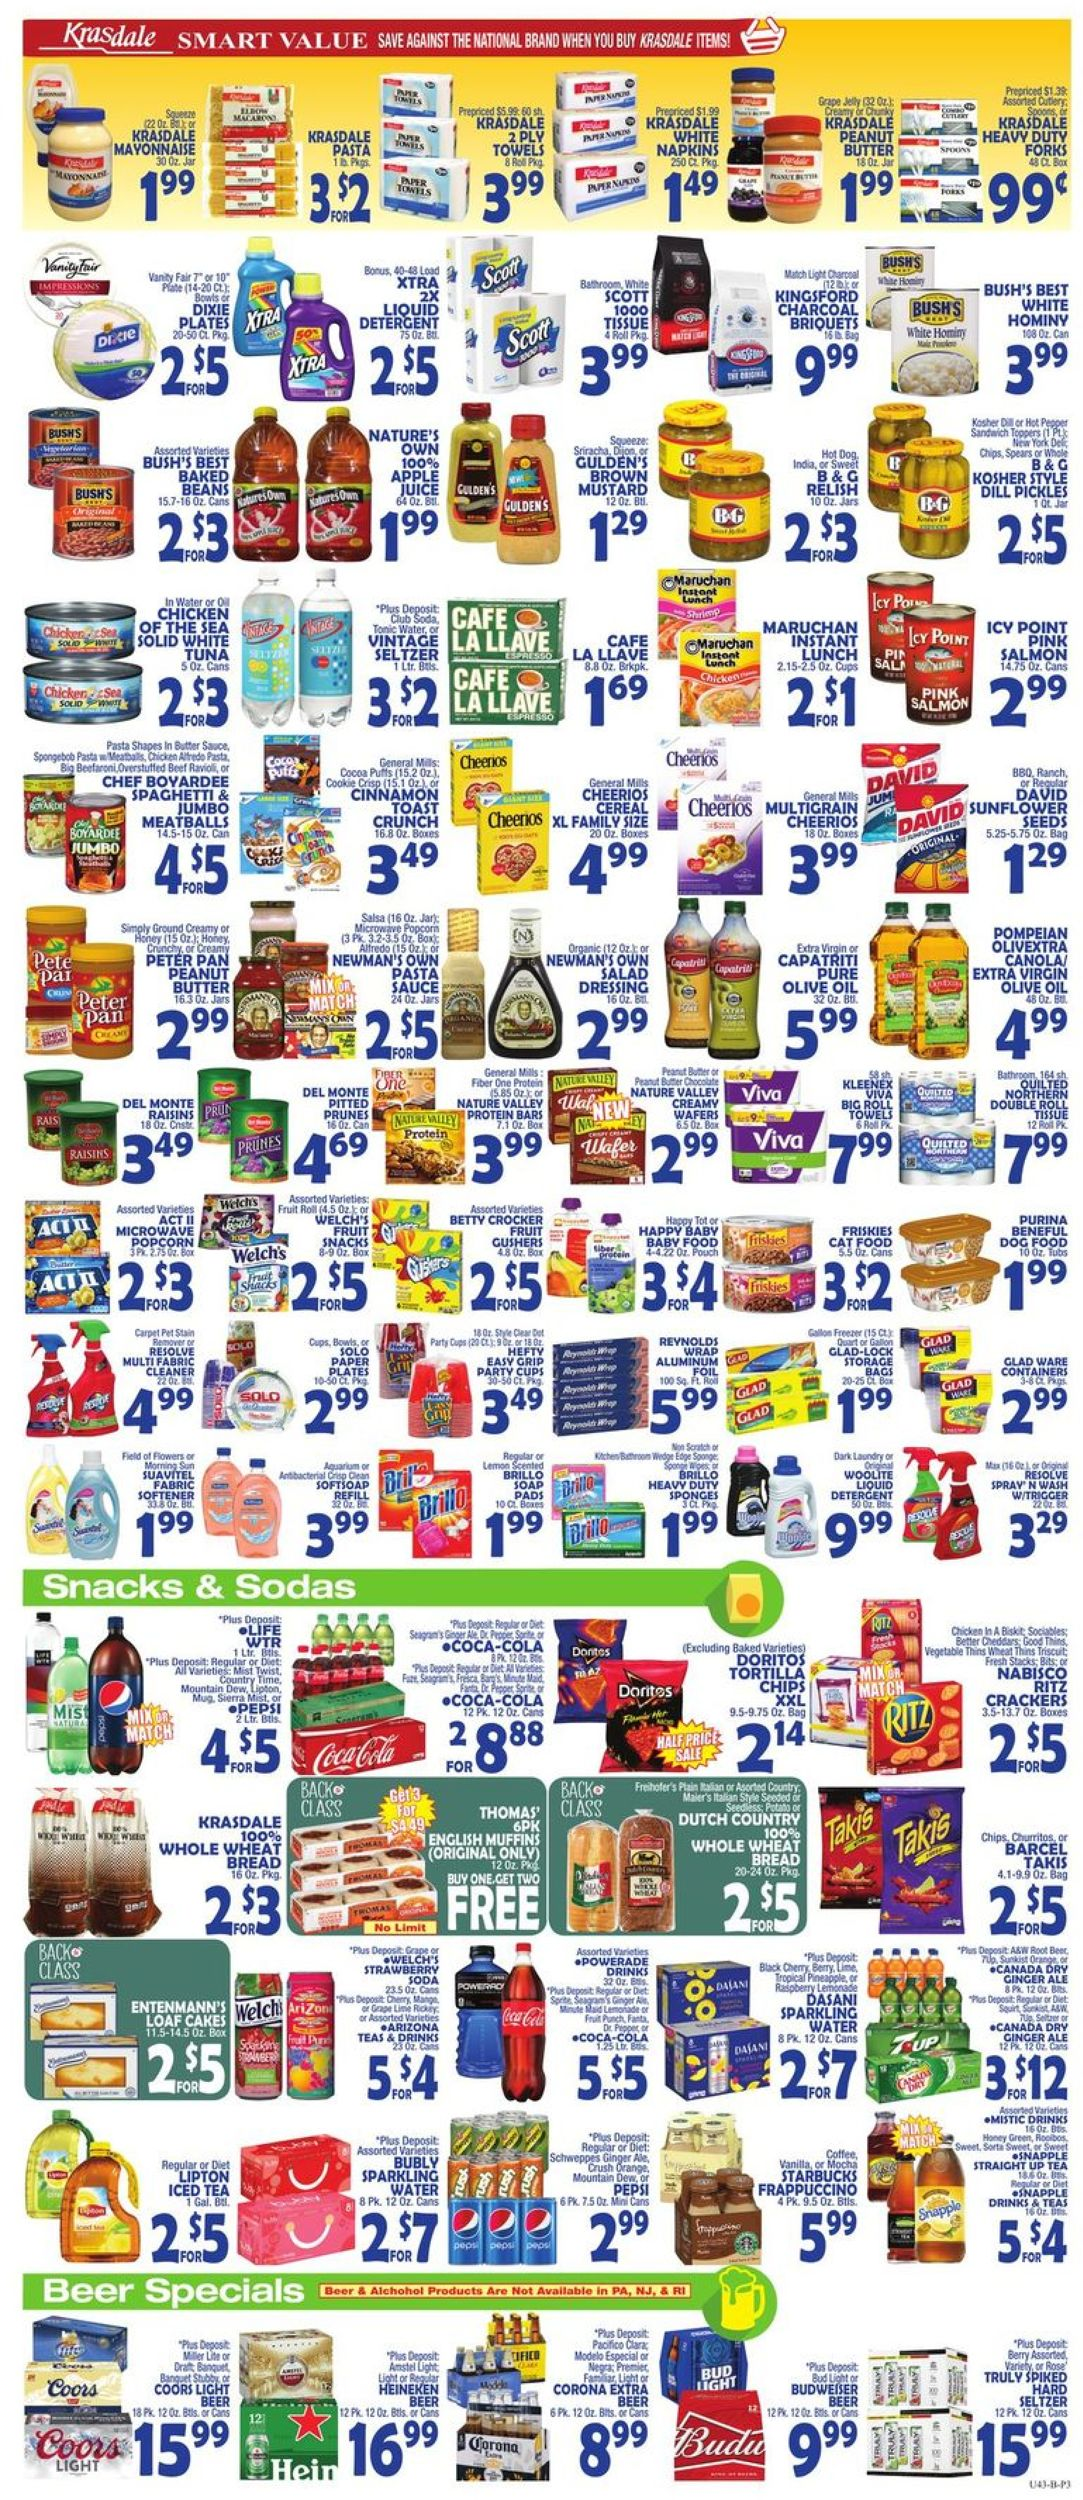 Bravo Supermarkets Current weekly ad 08/23 - 08/29/2019 [3] - weekly-ad-24.com